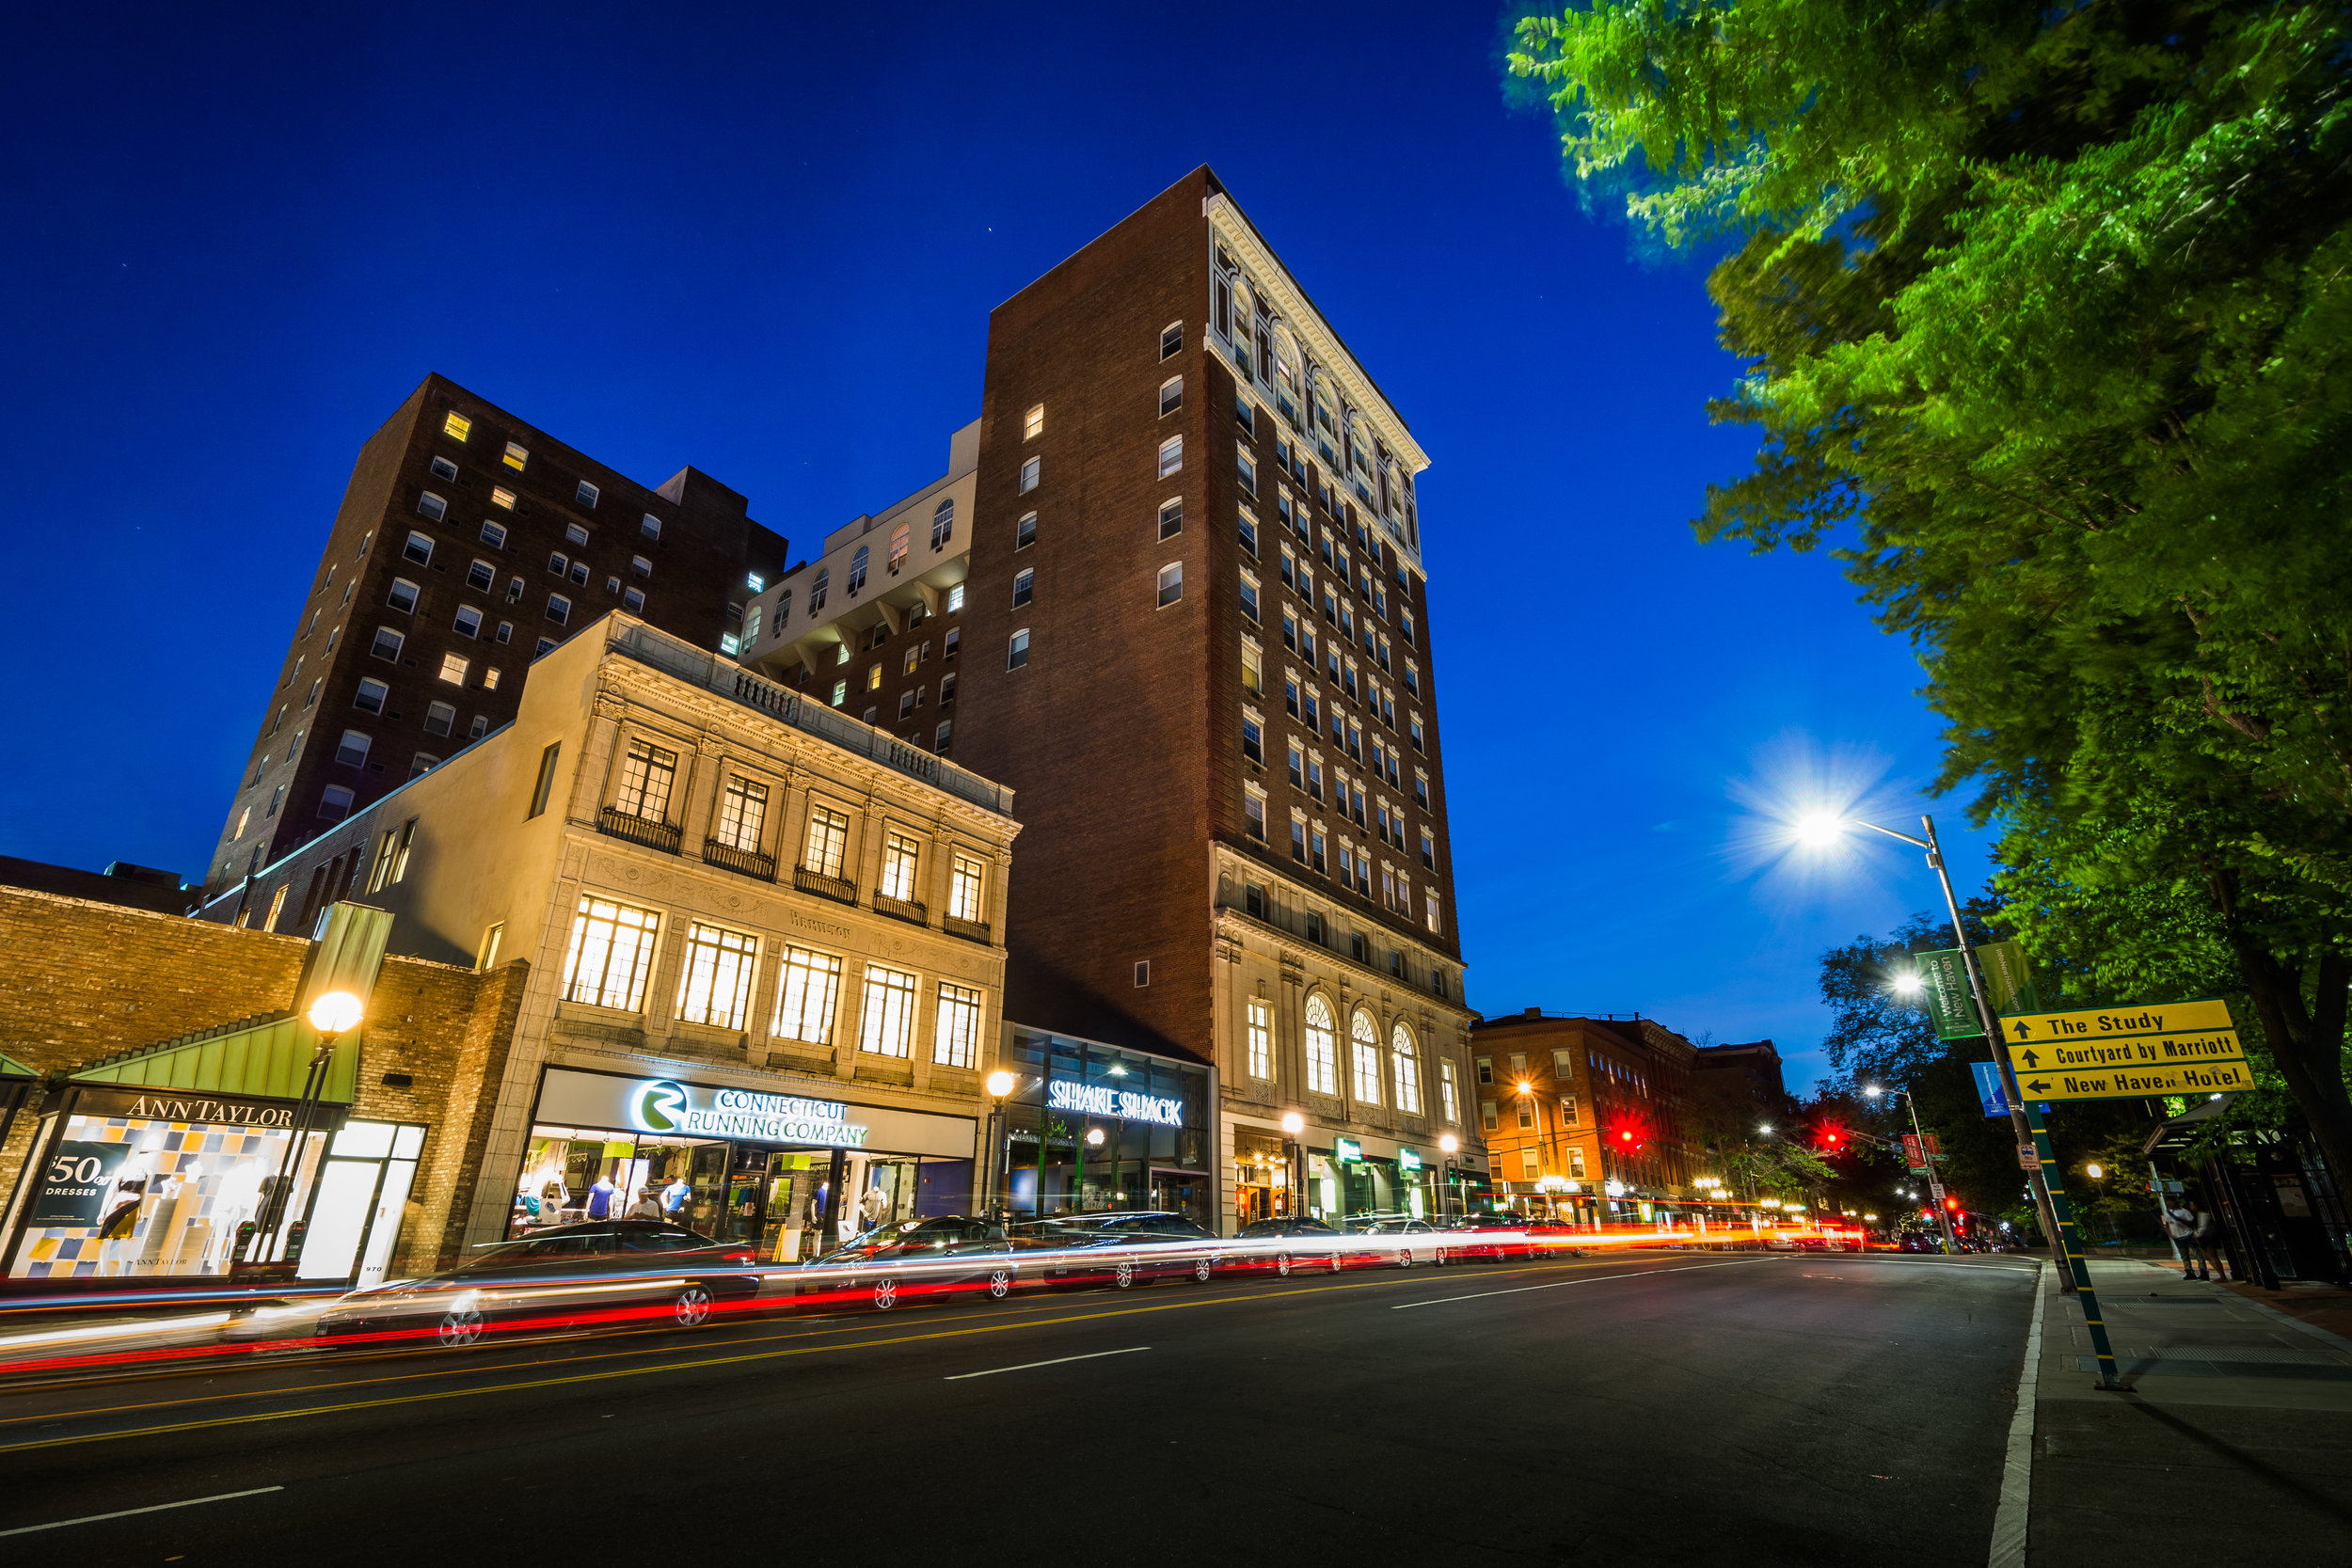 Buildings and traffic on Chapel Street at night, in downtown New Haven, Connecticut.-1.jpg